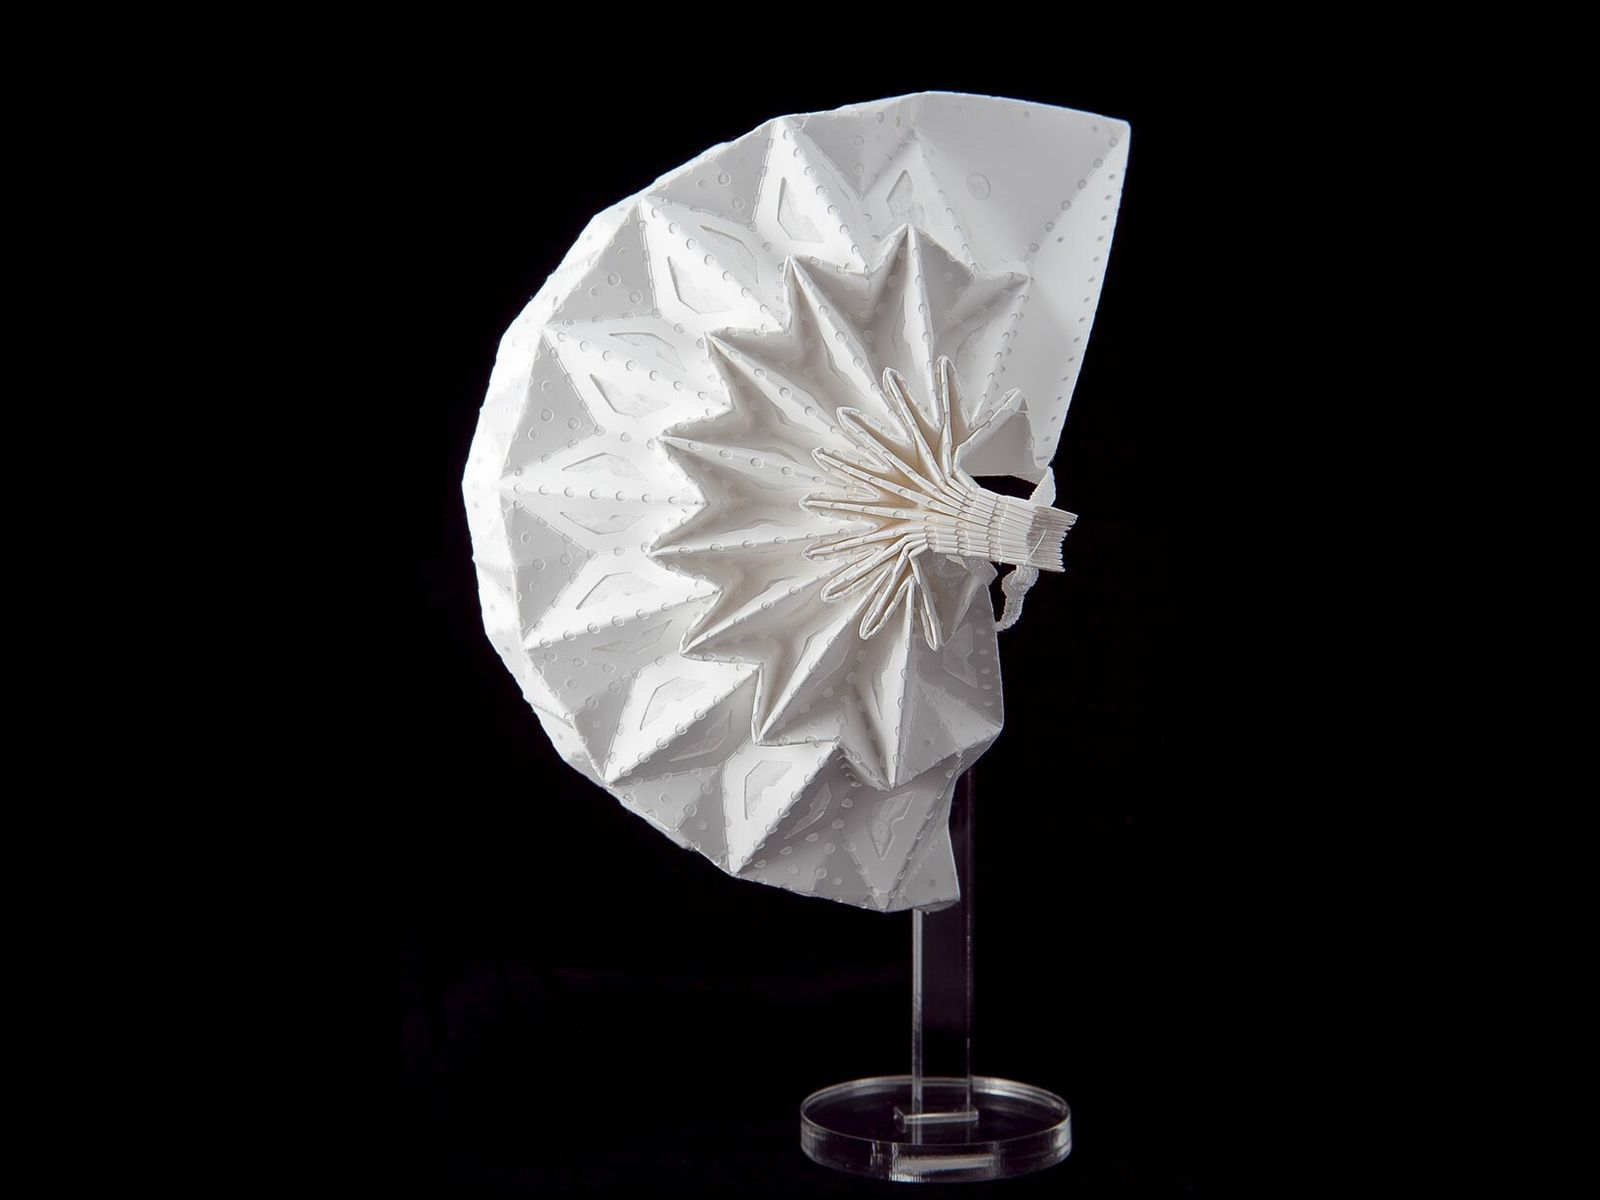 This intricately folded structure is the Airgami mask from Air99 LLC. The folding pattern imparts unique ...